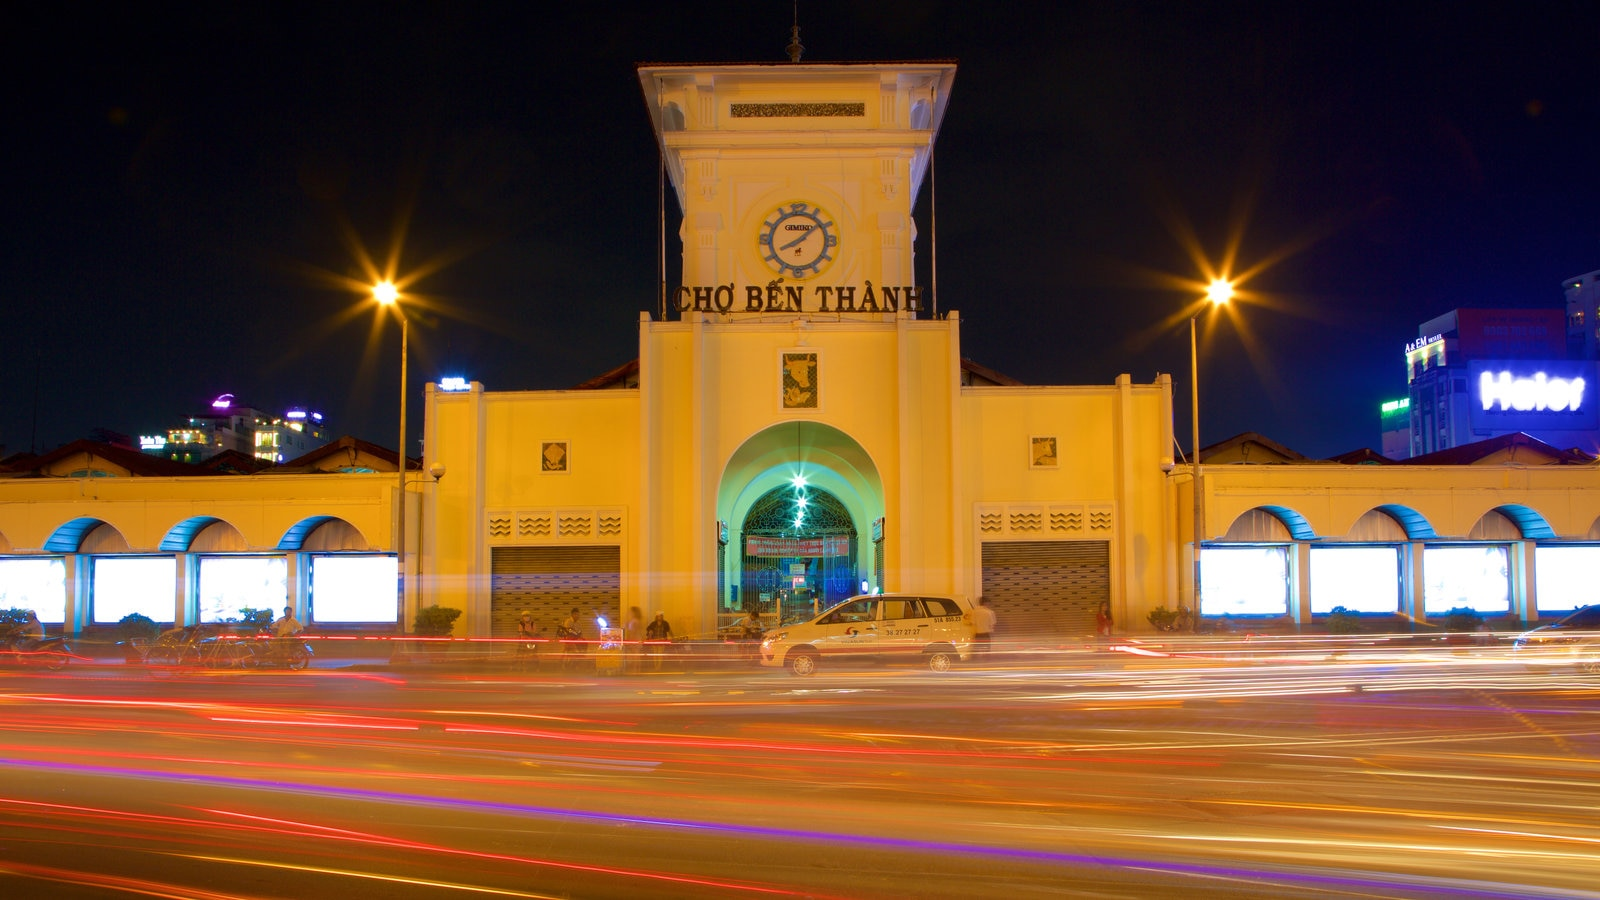 Ben Thanh Market showing heritage architecture, signage and night scenes